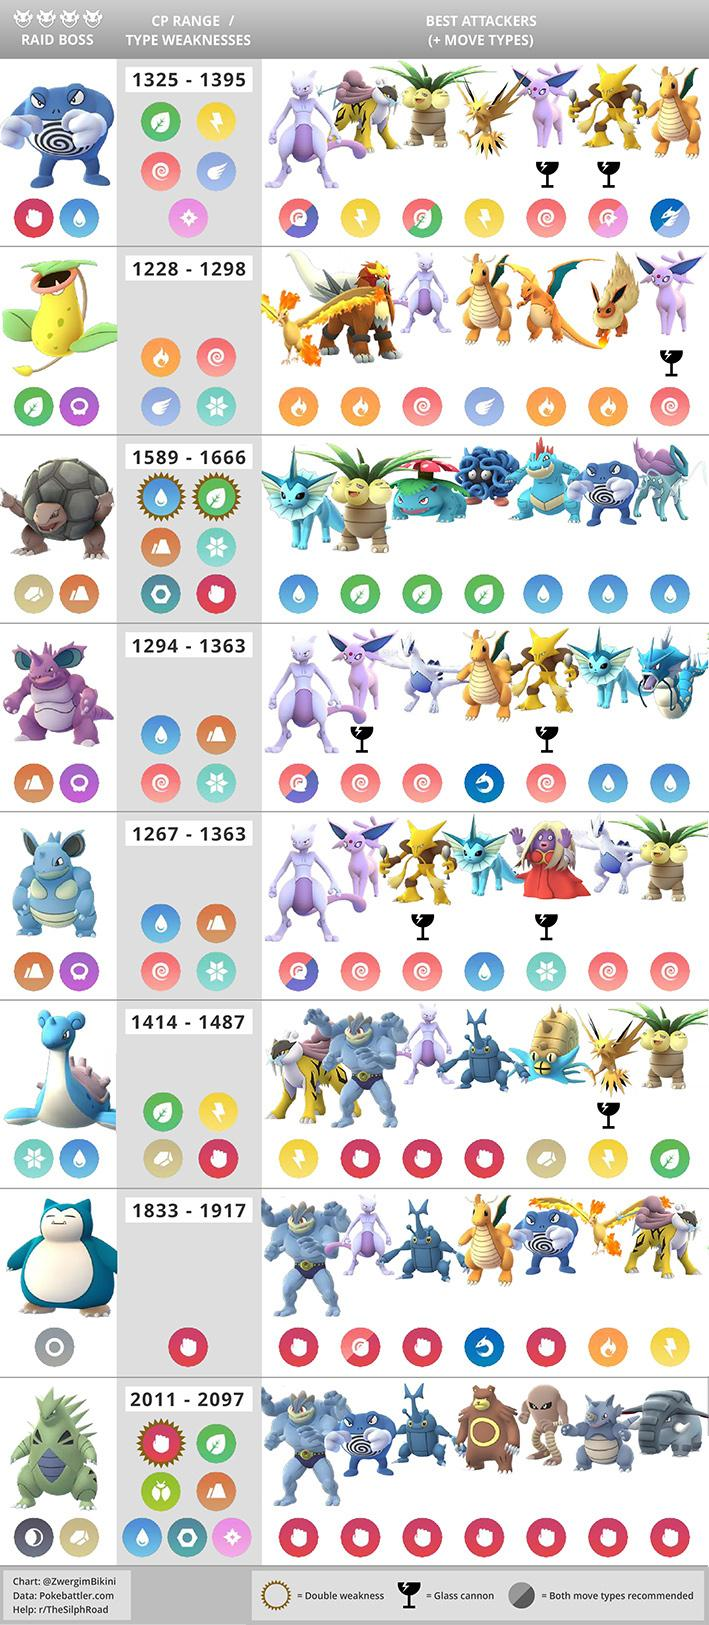 pokemon strength and weakness guide